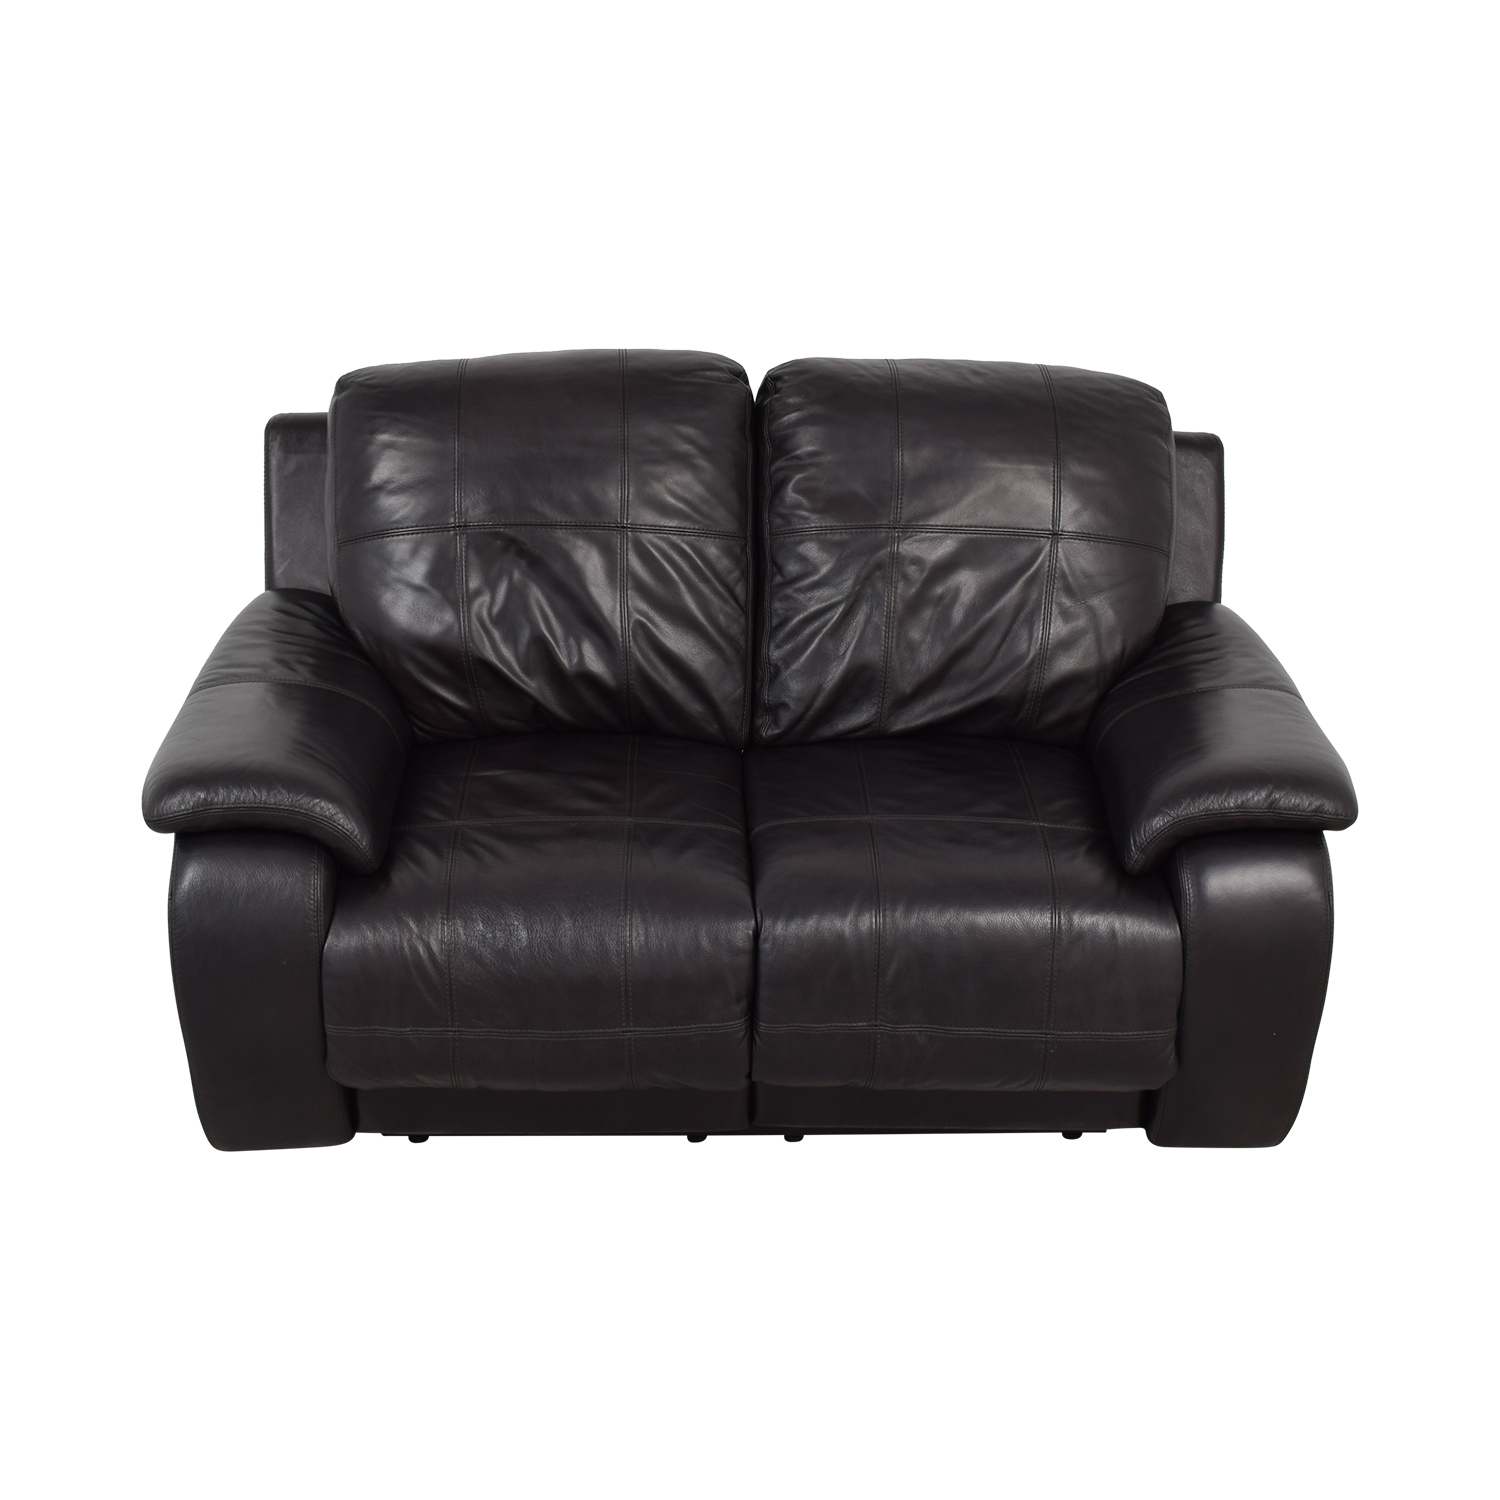 buy Raymour & Flanigan Black Power Recliner Loveseat Raymour & Flanigan